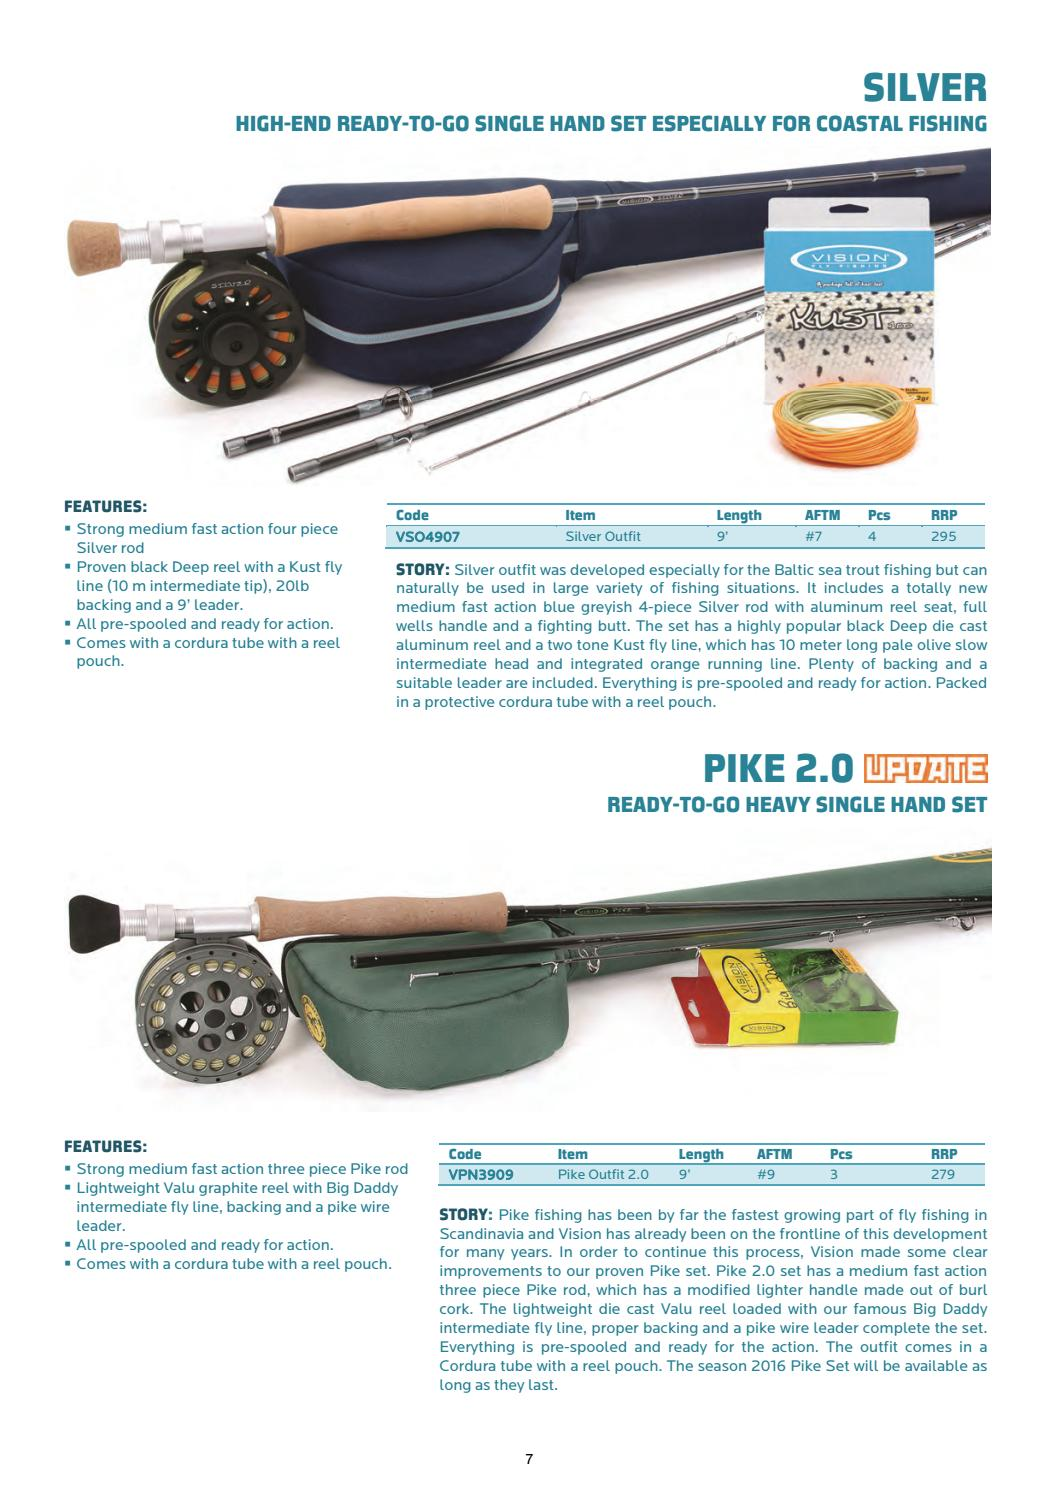 Vision Pike Set 2.0 Fly rod Reel Travel Tube with pike leader